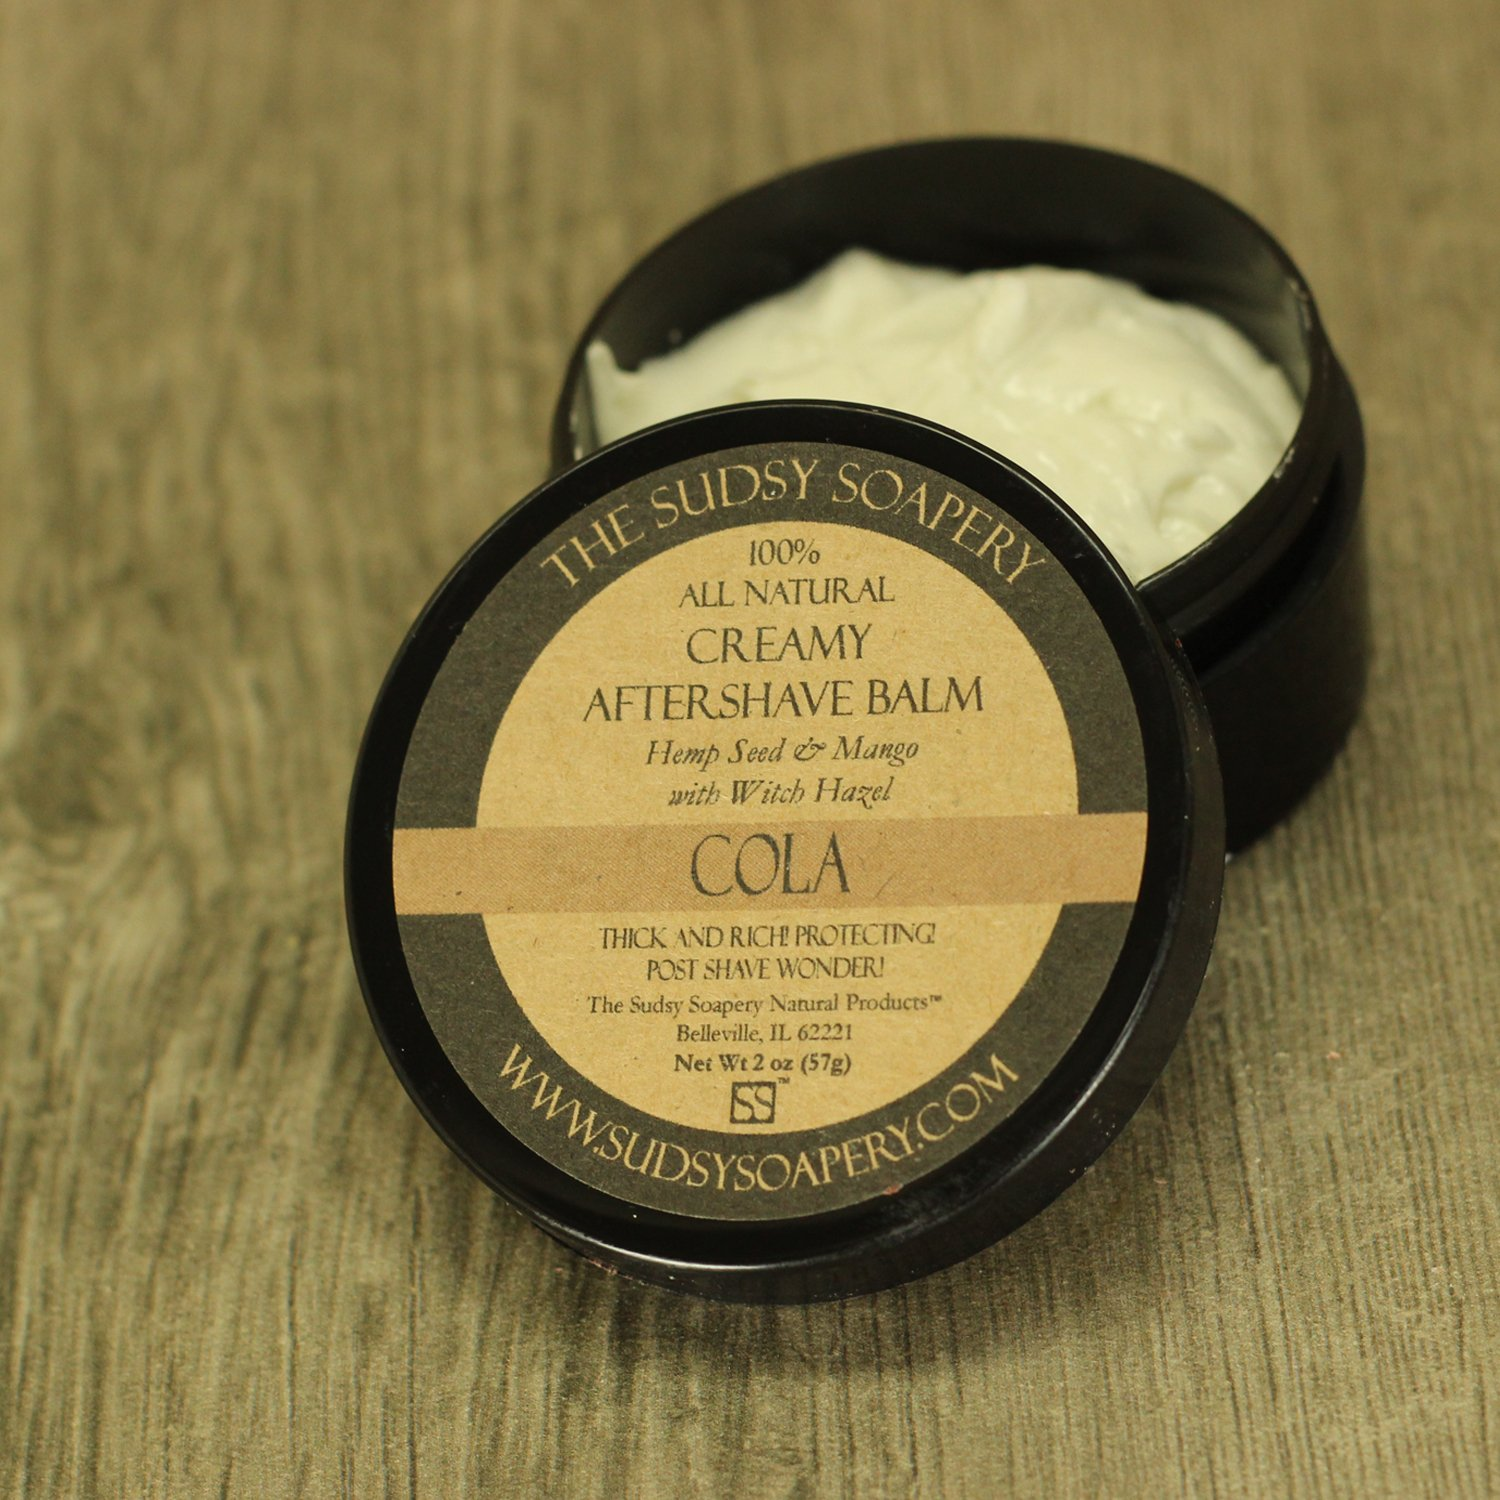 The Sudsy Soapery - Cola - Balm image